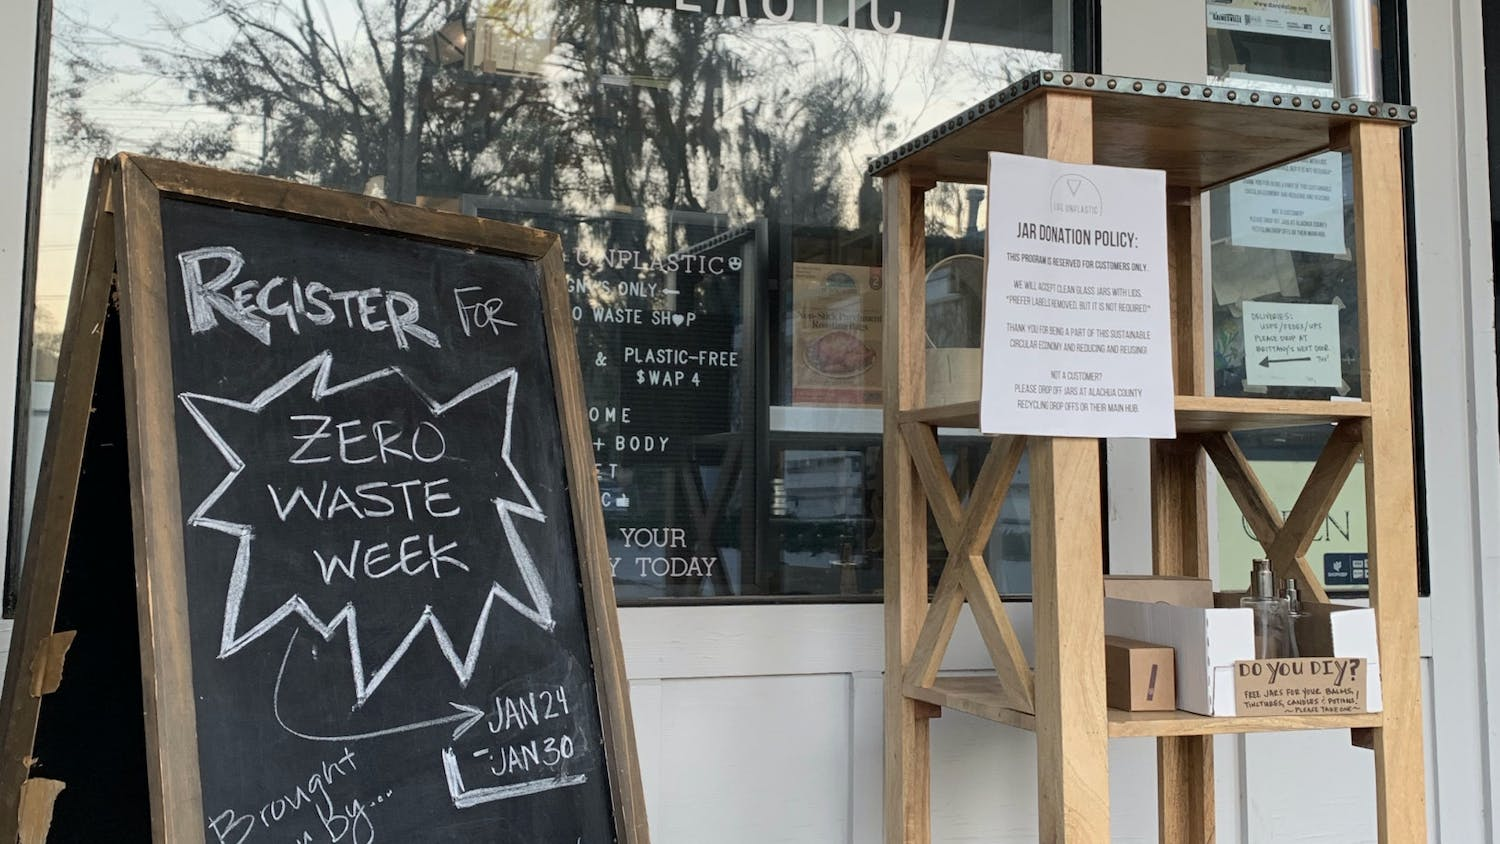 The storefront of Life Unplastic offers information about the second annual Zero Waste Week.